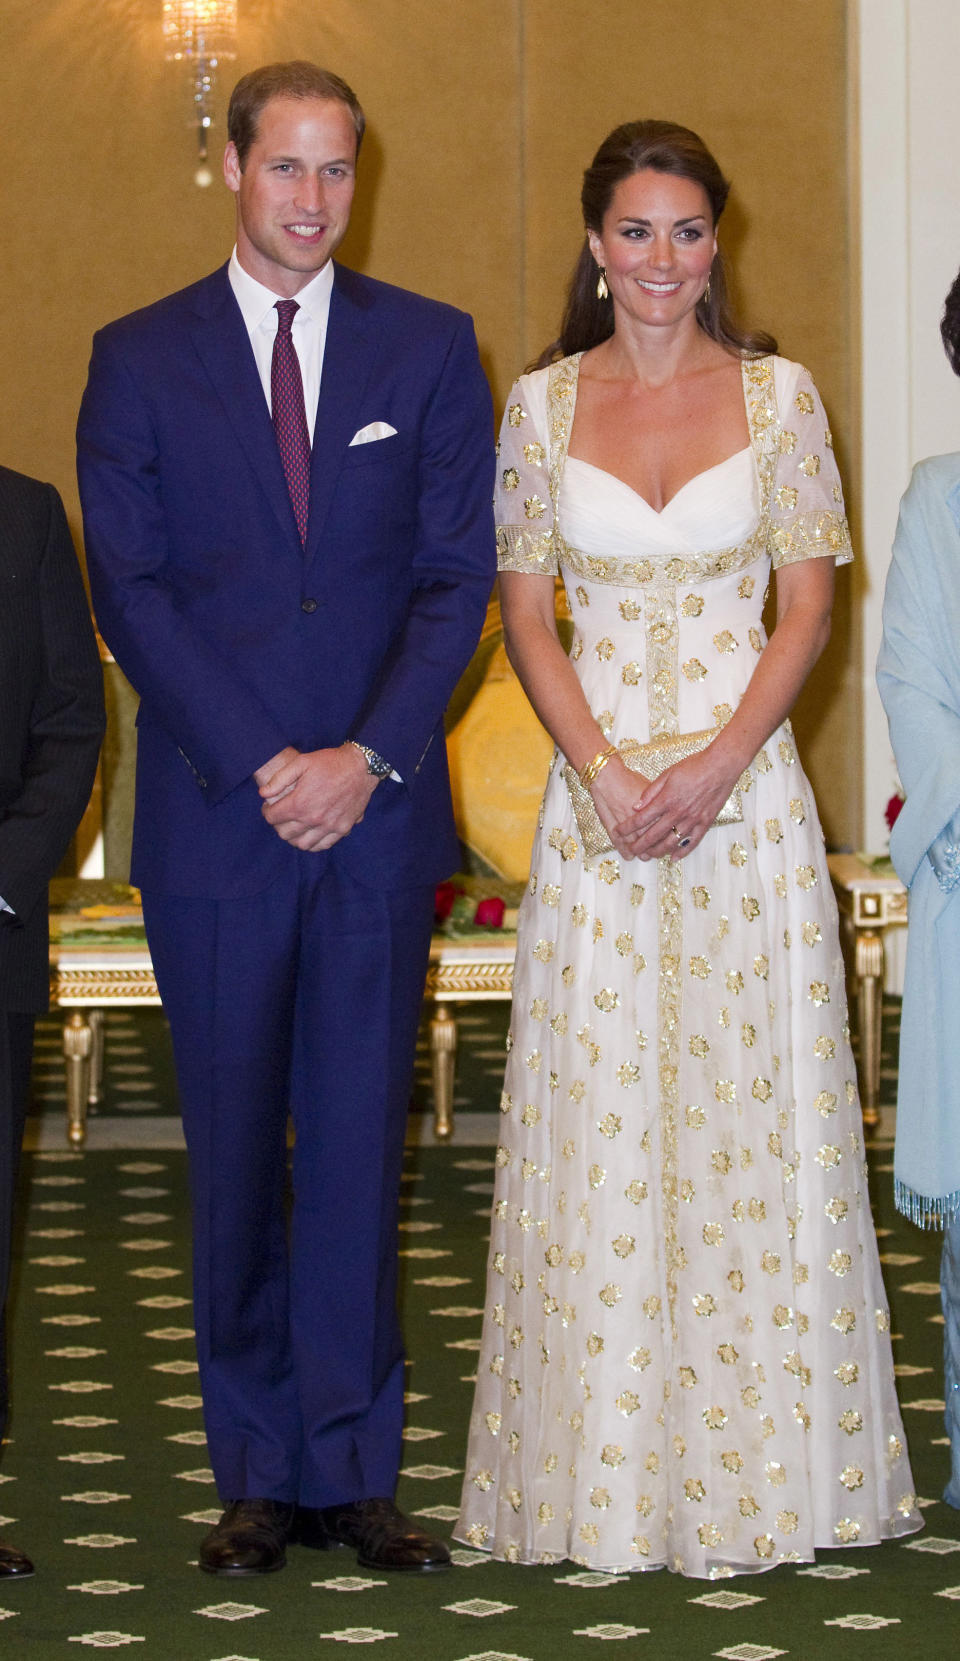 The Duchess of Cambridge wearing the Alexander McQueen number in Kuala Lumpur on September 13, 2012. [Photo: Getty]